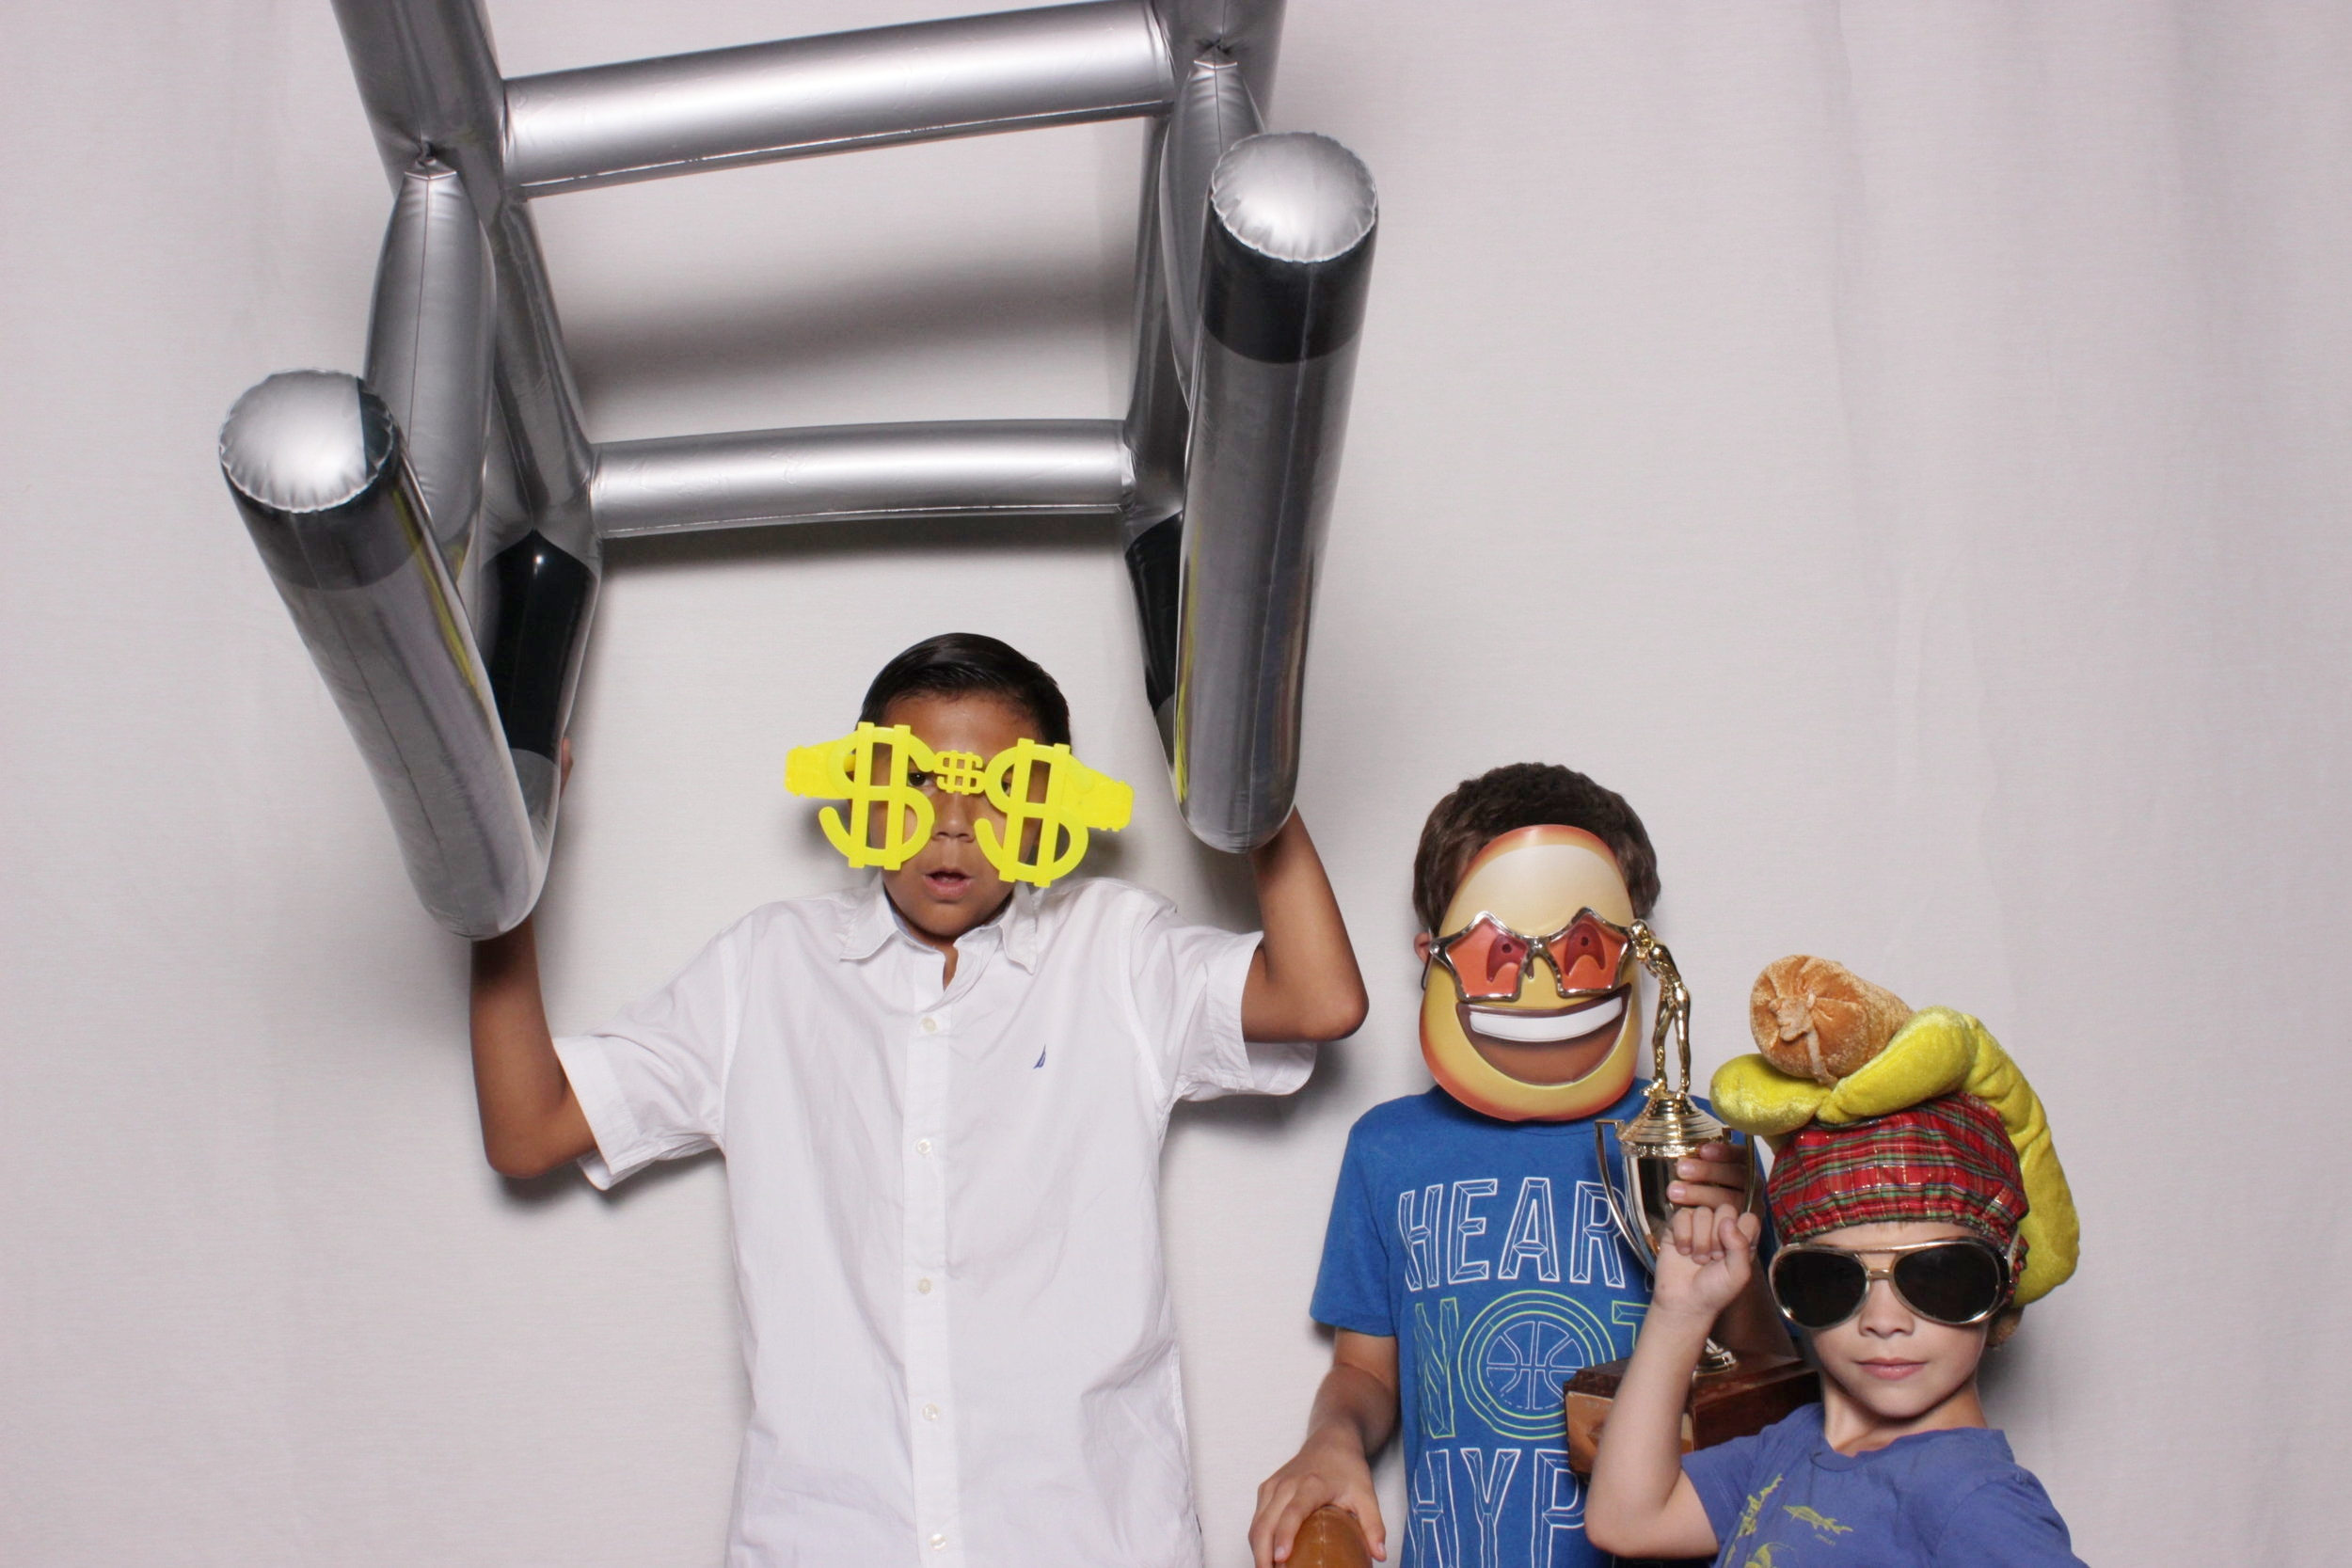 birthday-party-photo-booth-rental-chico